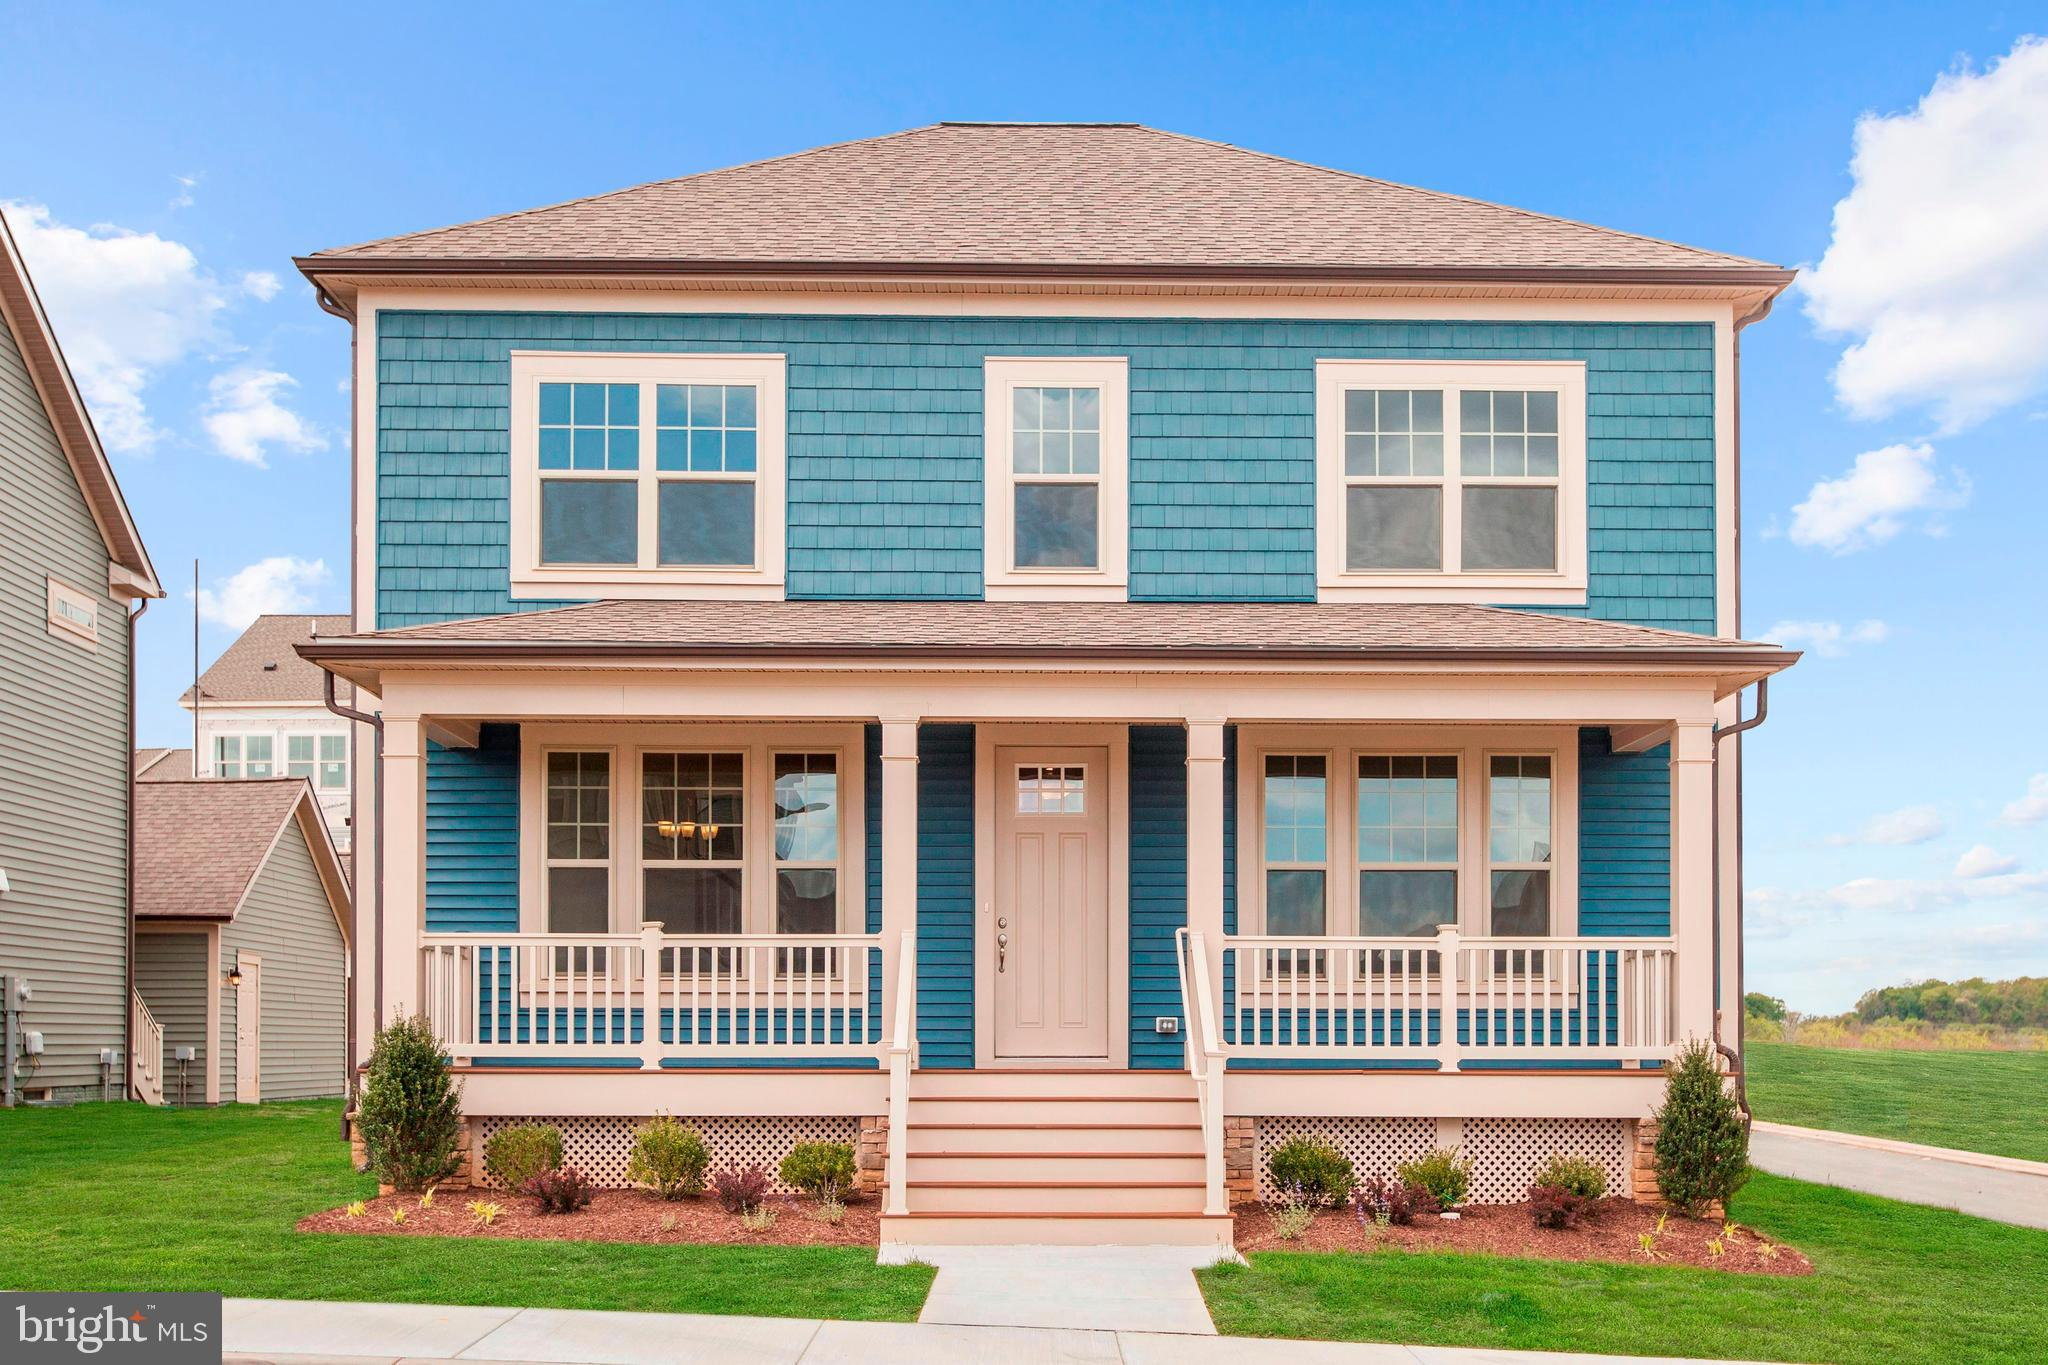 3520 Timber Green Dr, Frederick, MD, 21704